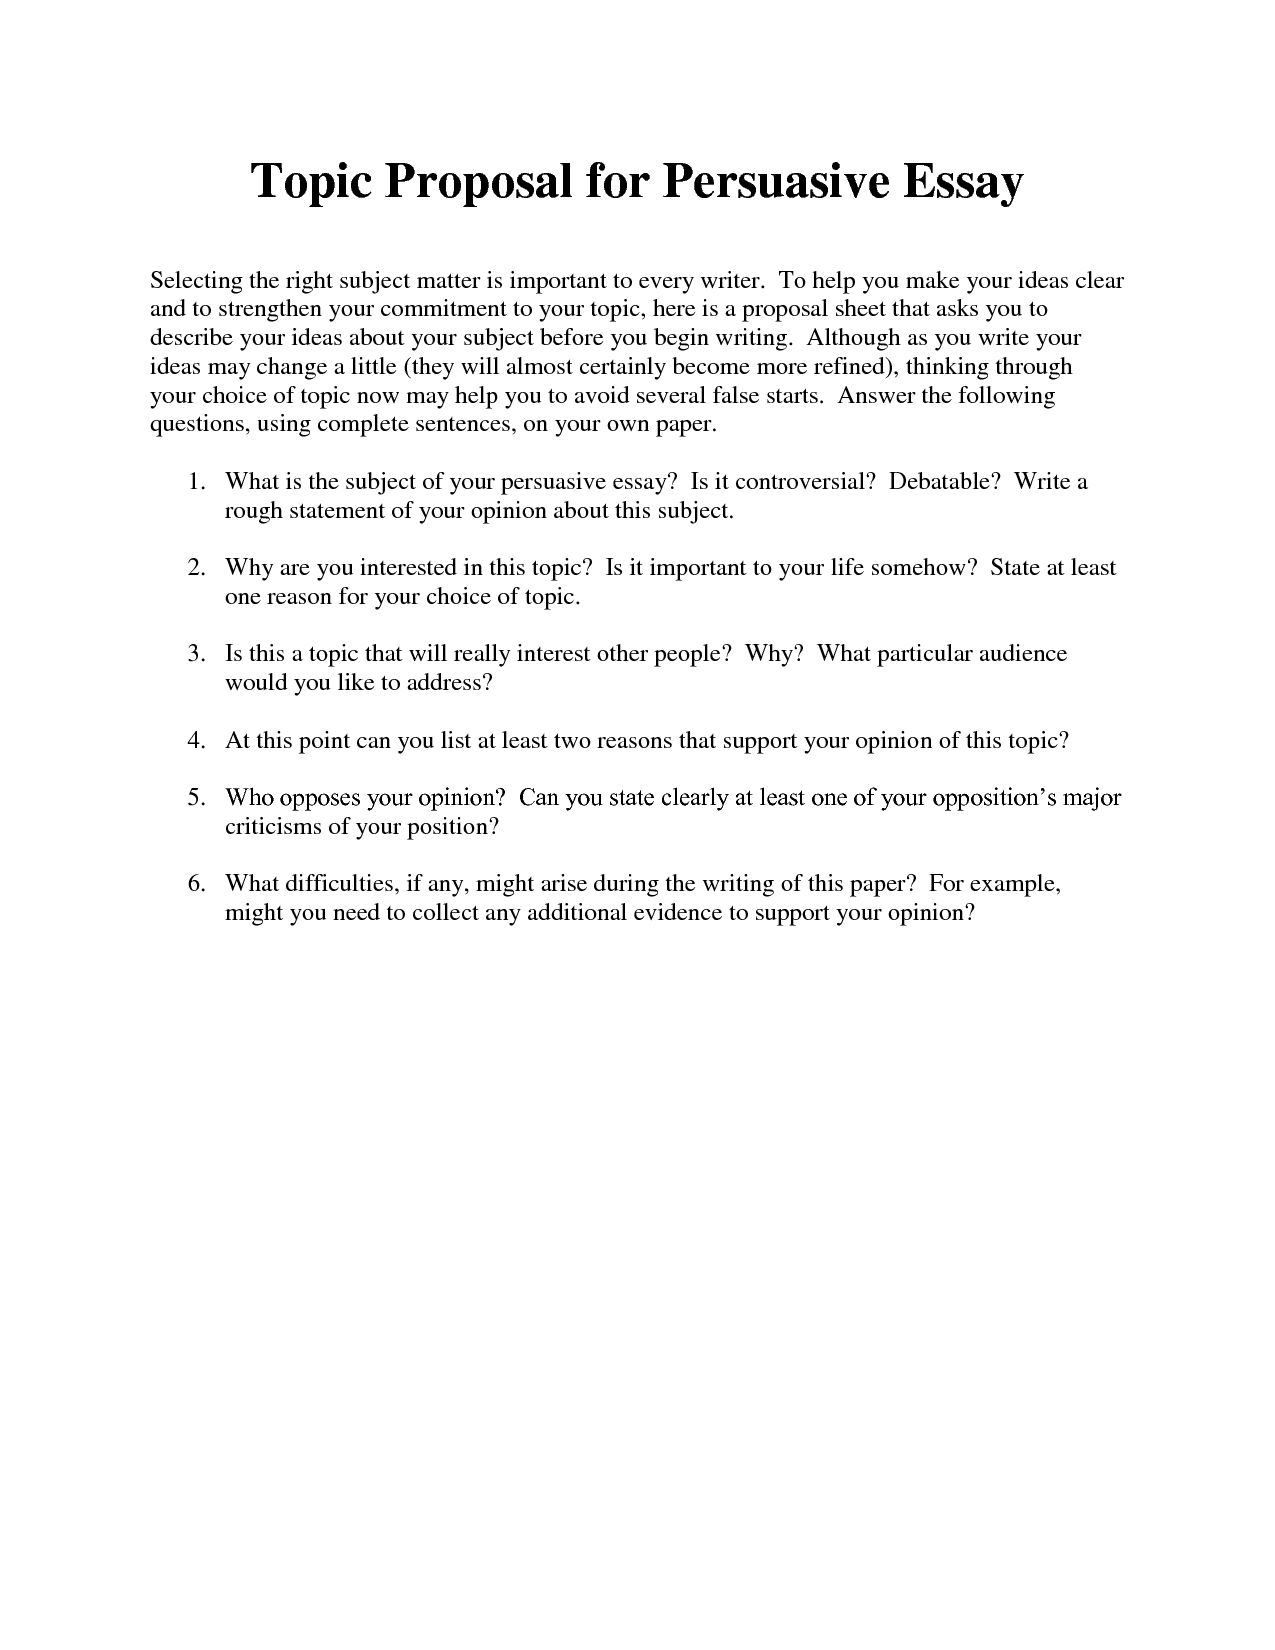 016 proposal essay example research topic 614609 ~ thatsnotus.